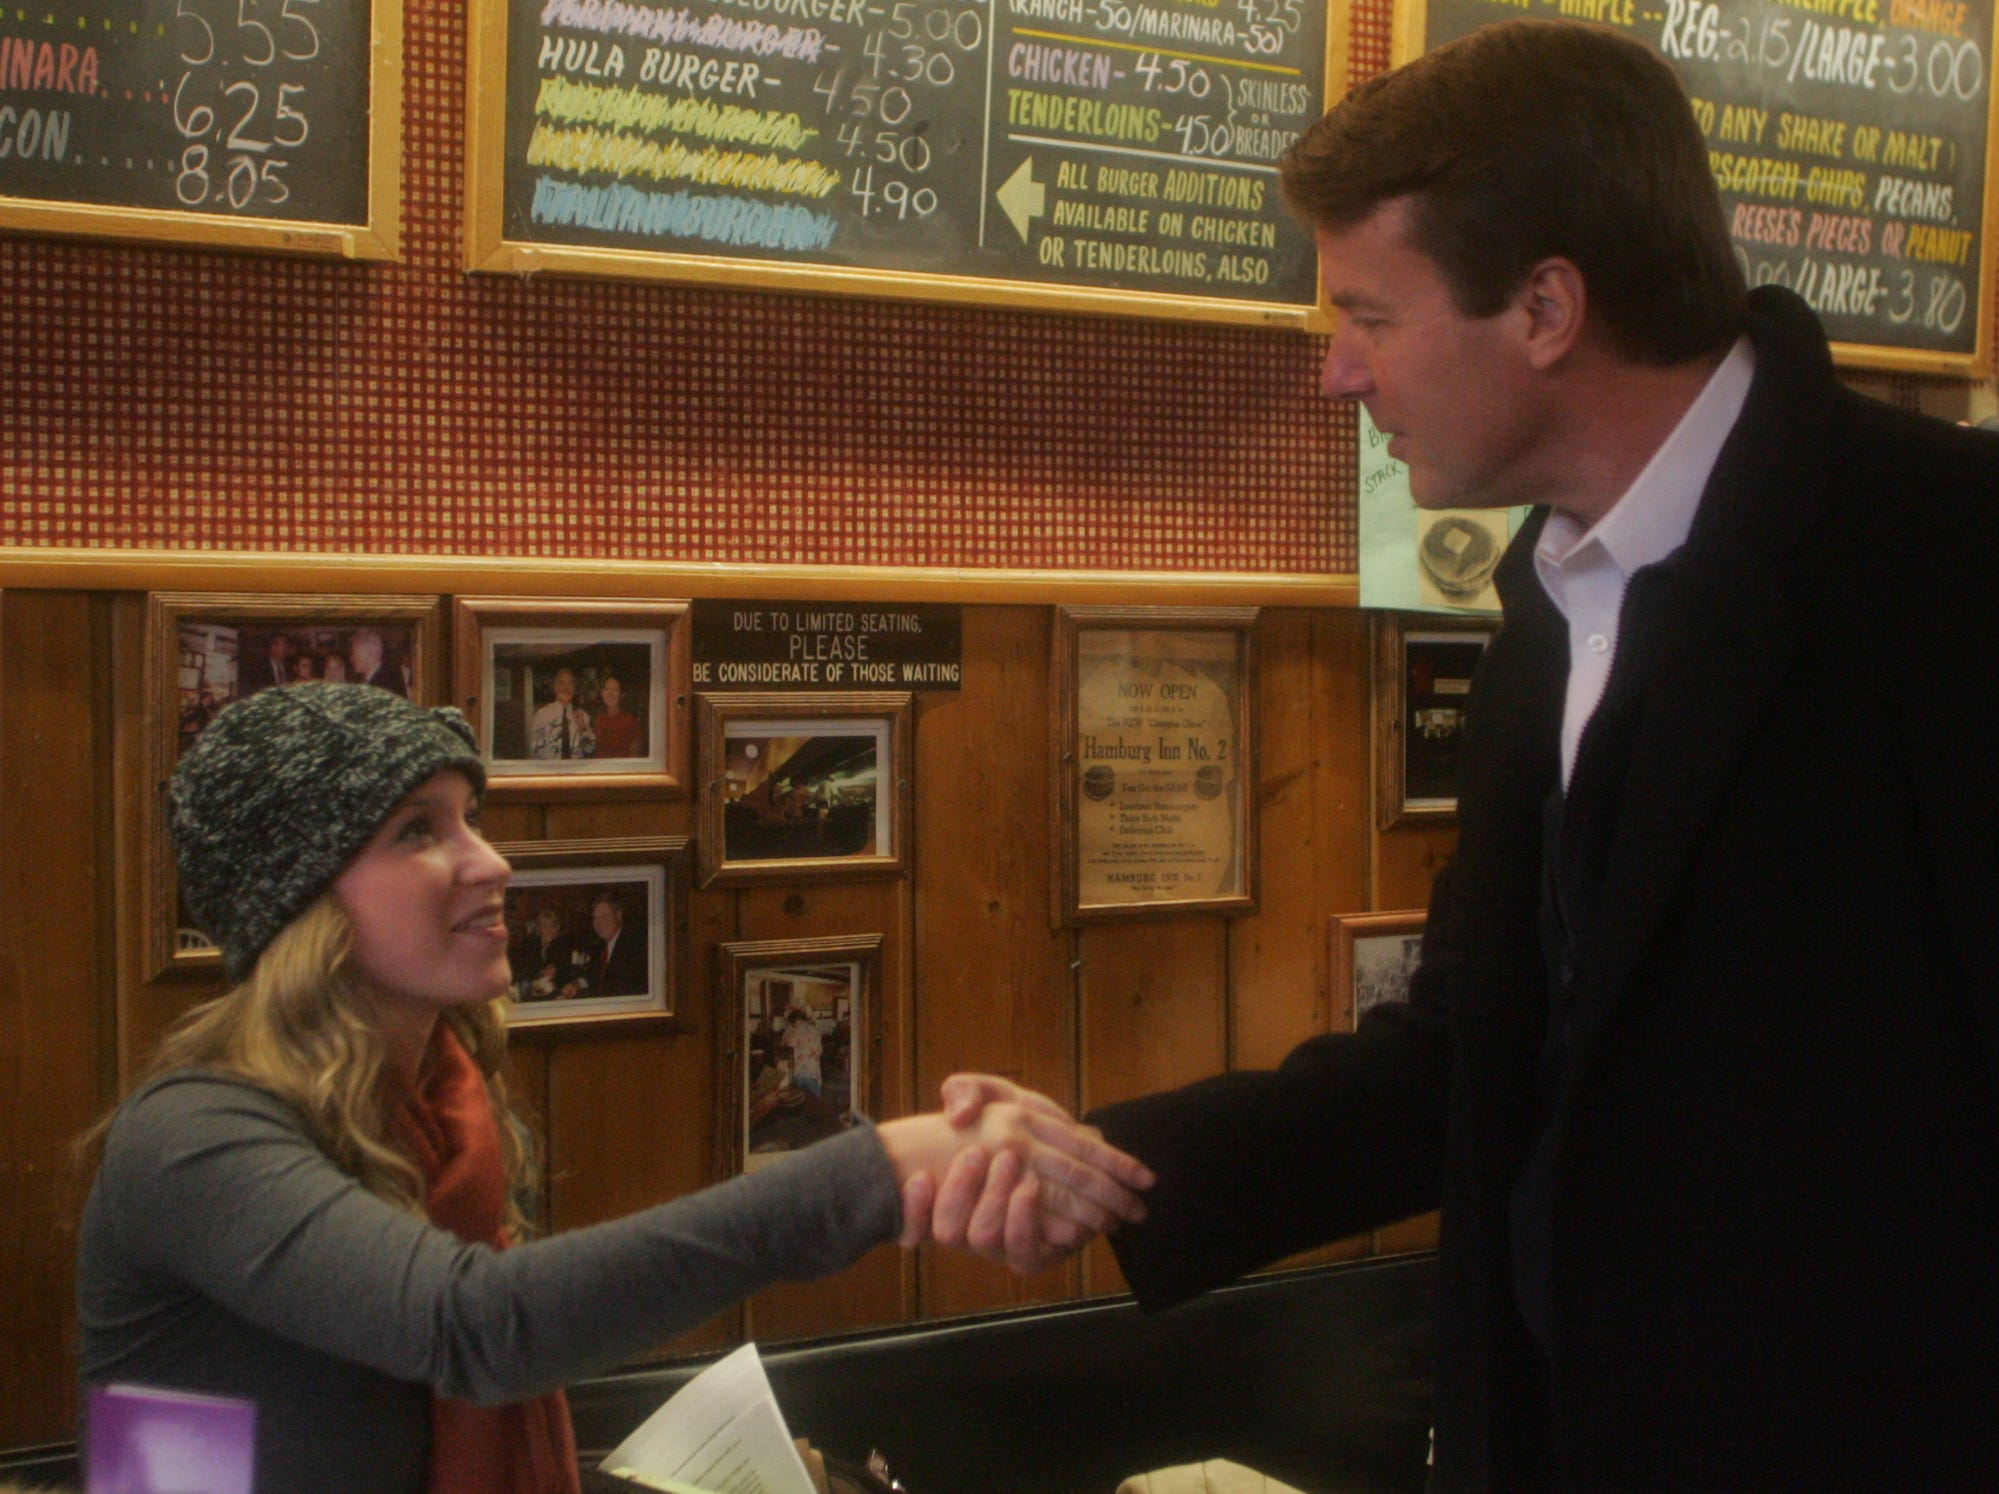 Democratic presidential hopeful John Edwards, right, shakes hands with Margaret Jennings during a quick stop at the Hamburg Inn No. 2 in Iowa City on Tuesday, Dec. 11, 2007.